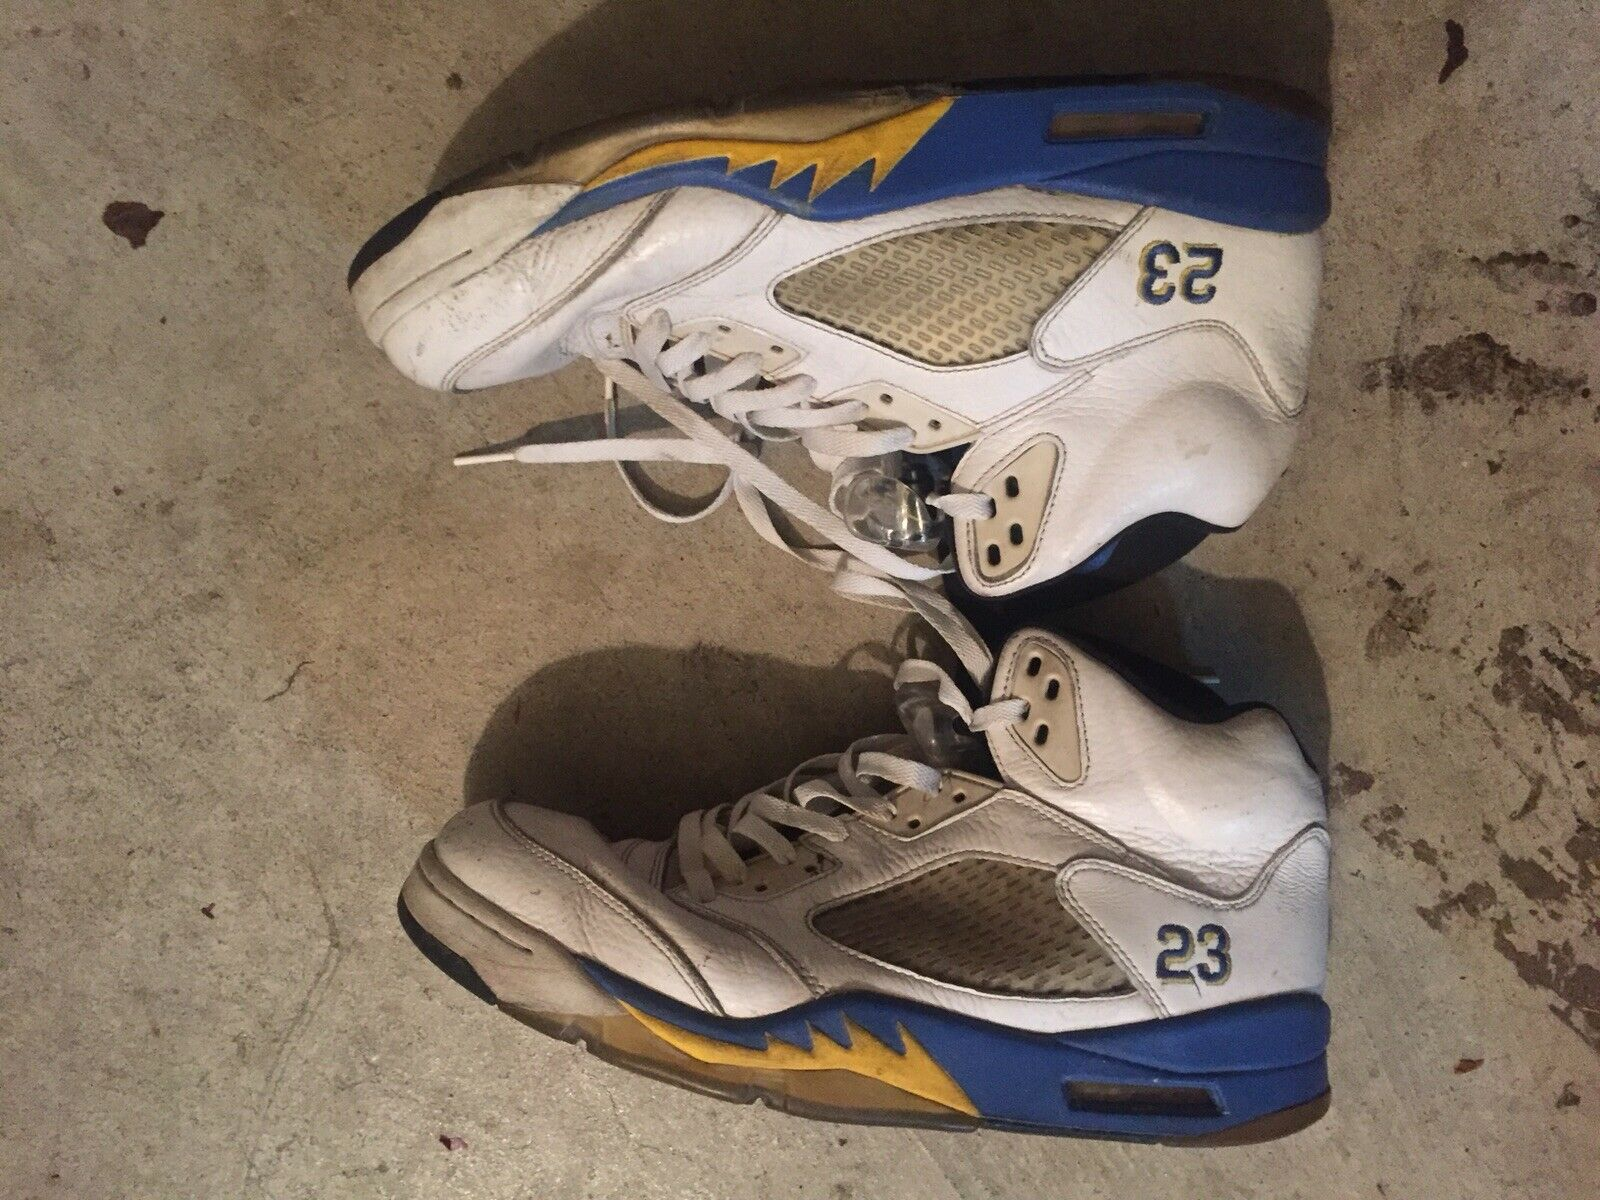 Jordan 5 Retro Laney (2013) Sz 12 100% Authentic Good For Restoration cleaning